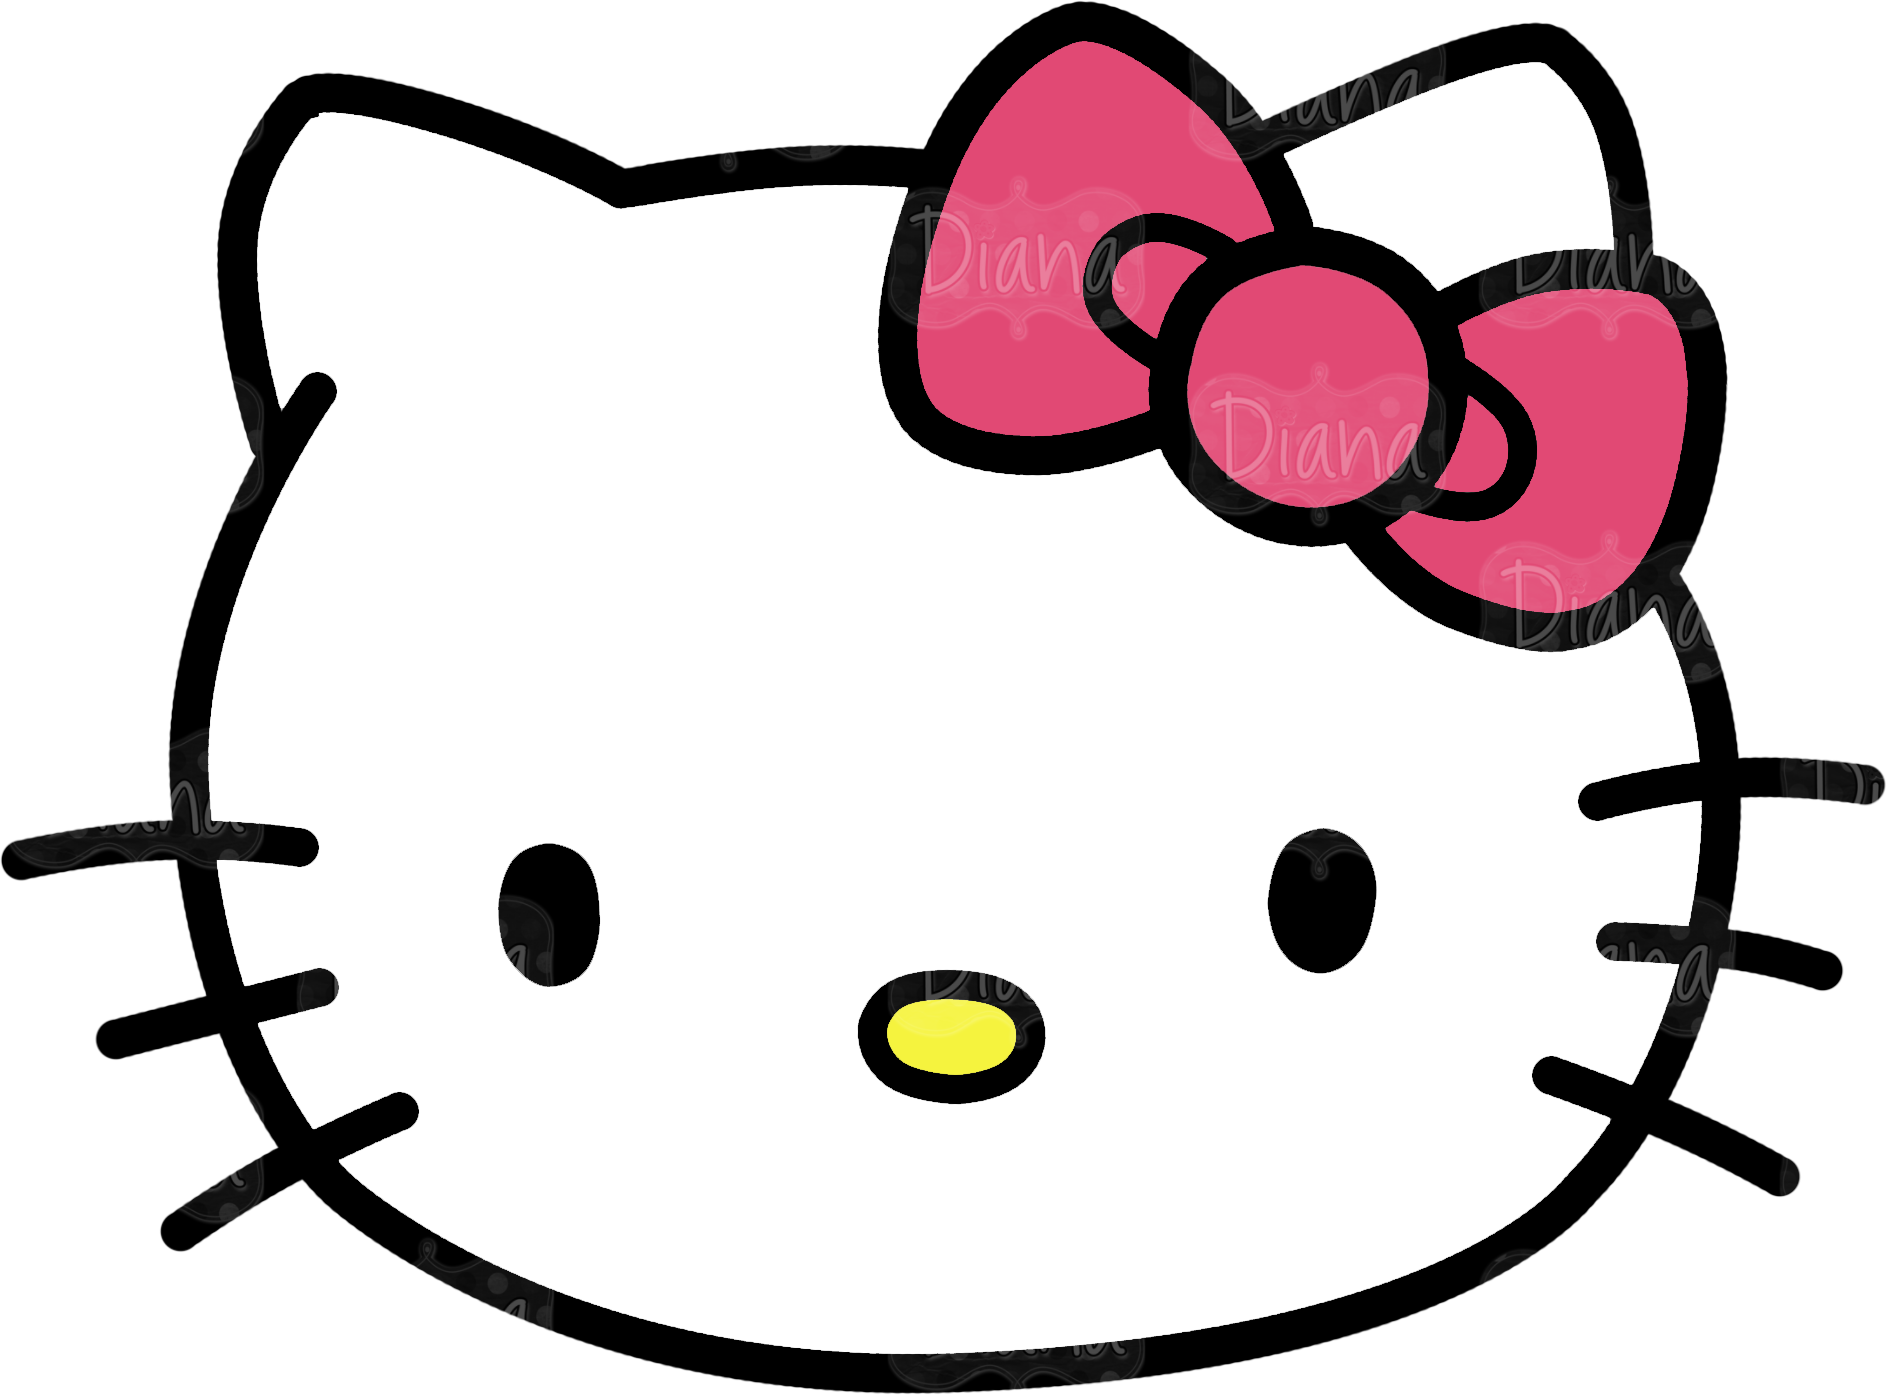 Transparent head clipart - Hello Kitty Head Clipart Pictures - Hello Kitty Head Png